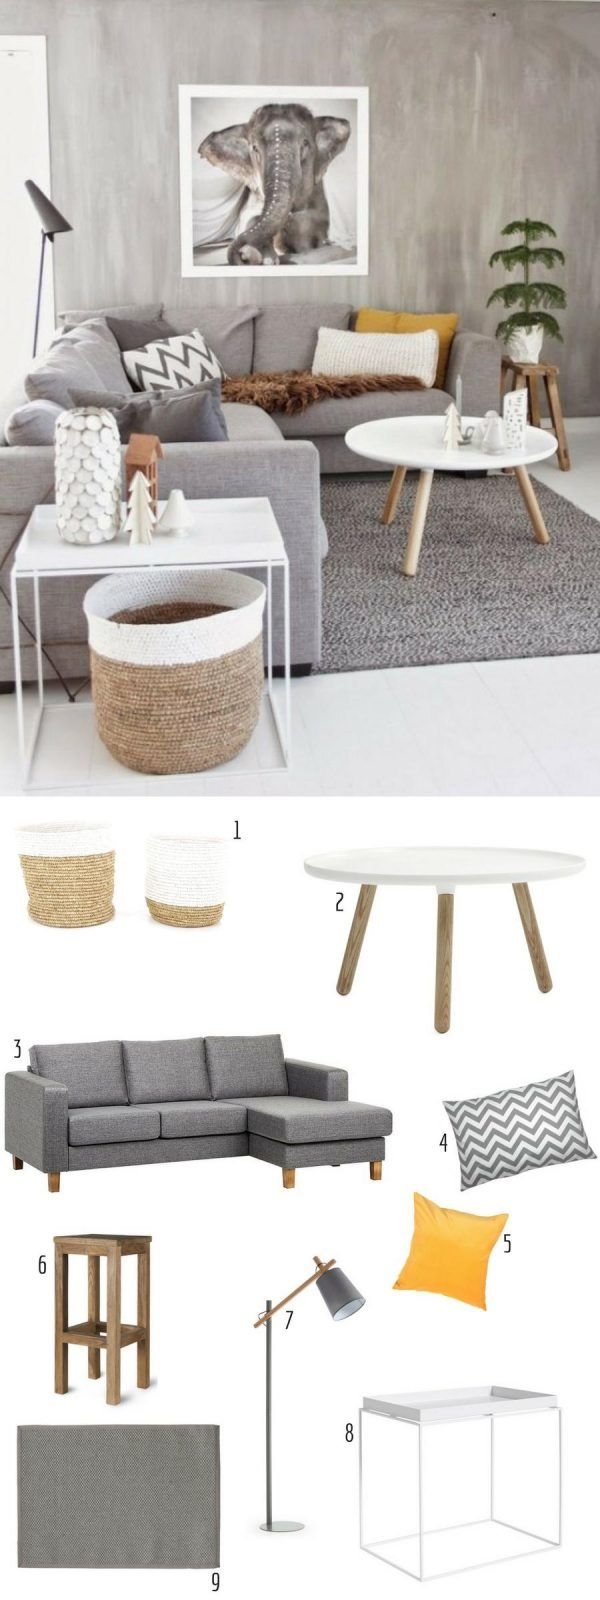 Populaire Best 25+ Deco salon ideas on Pinterest | Coffee tables, Salon cosy  MG82